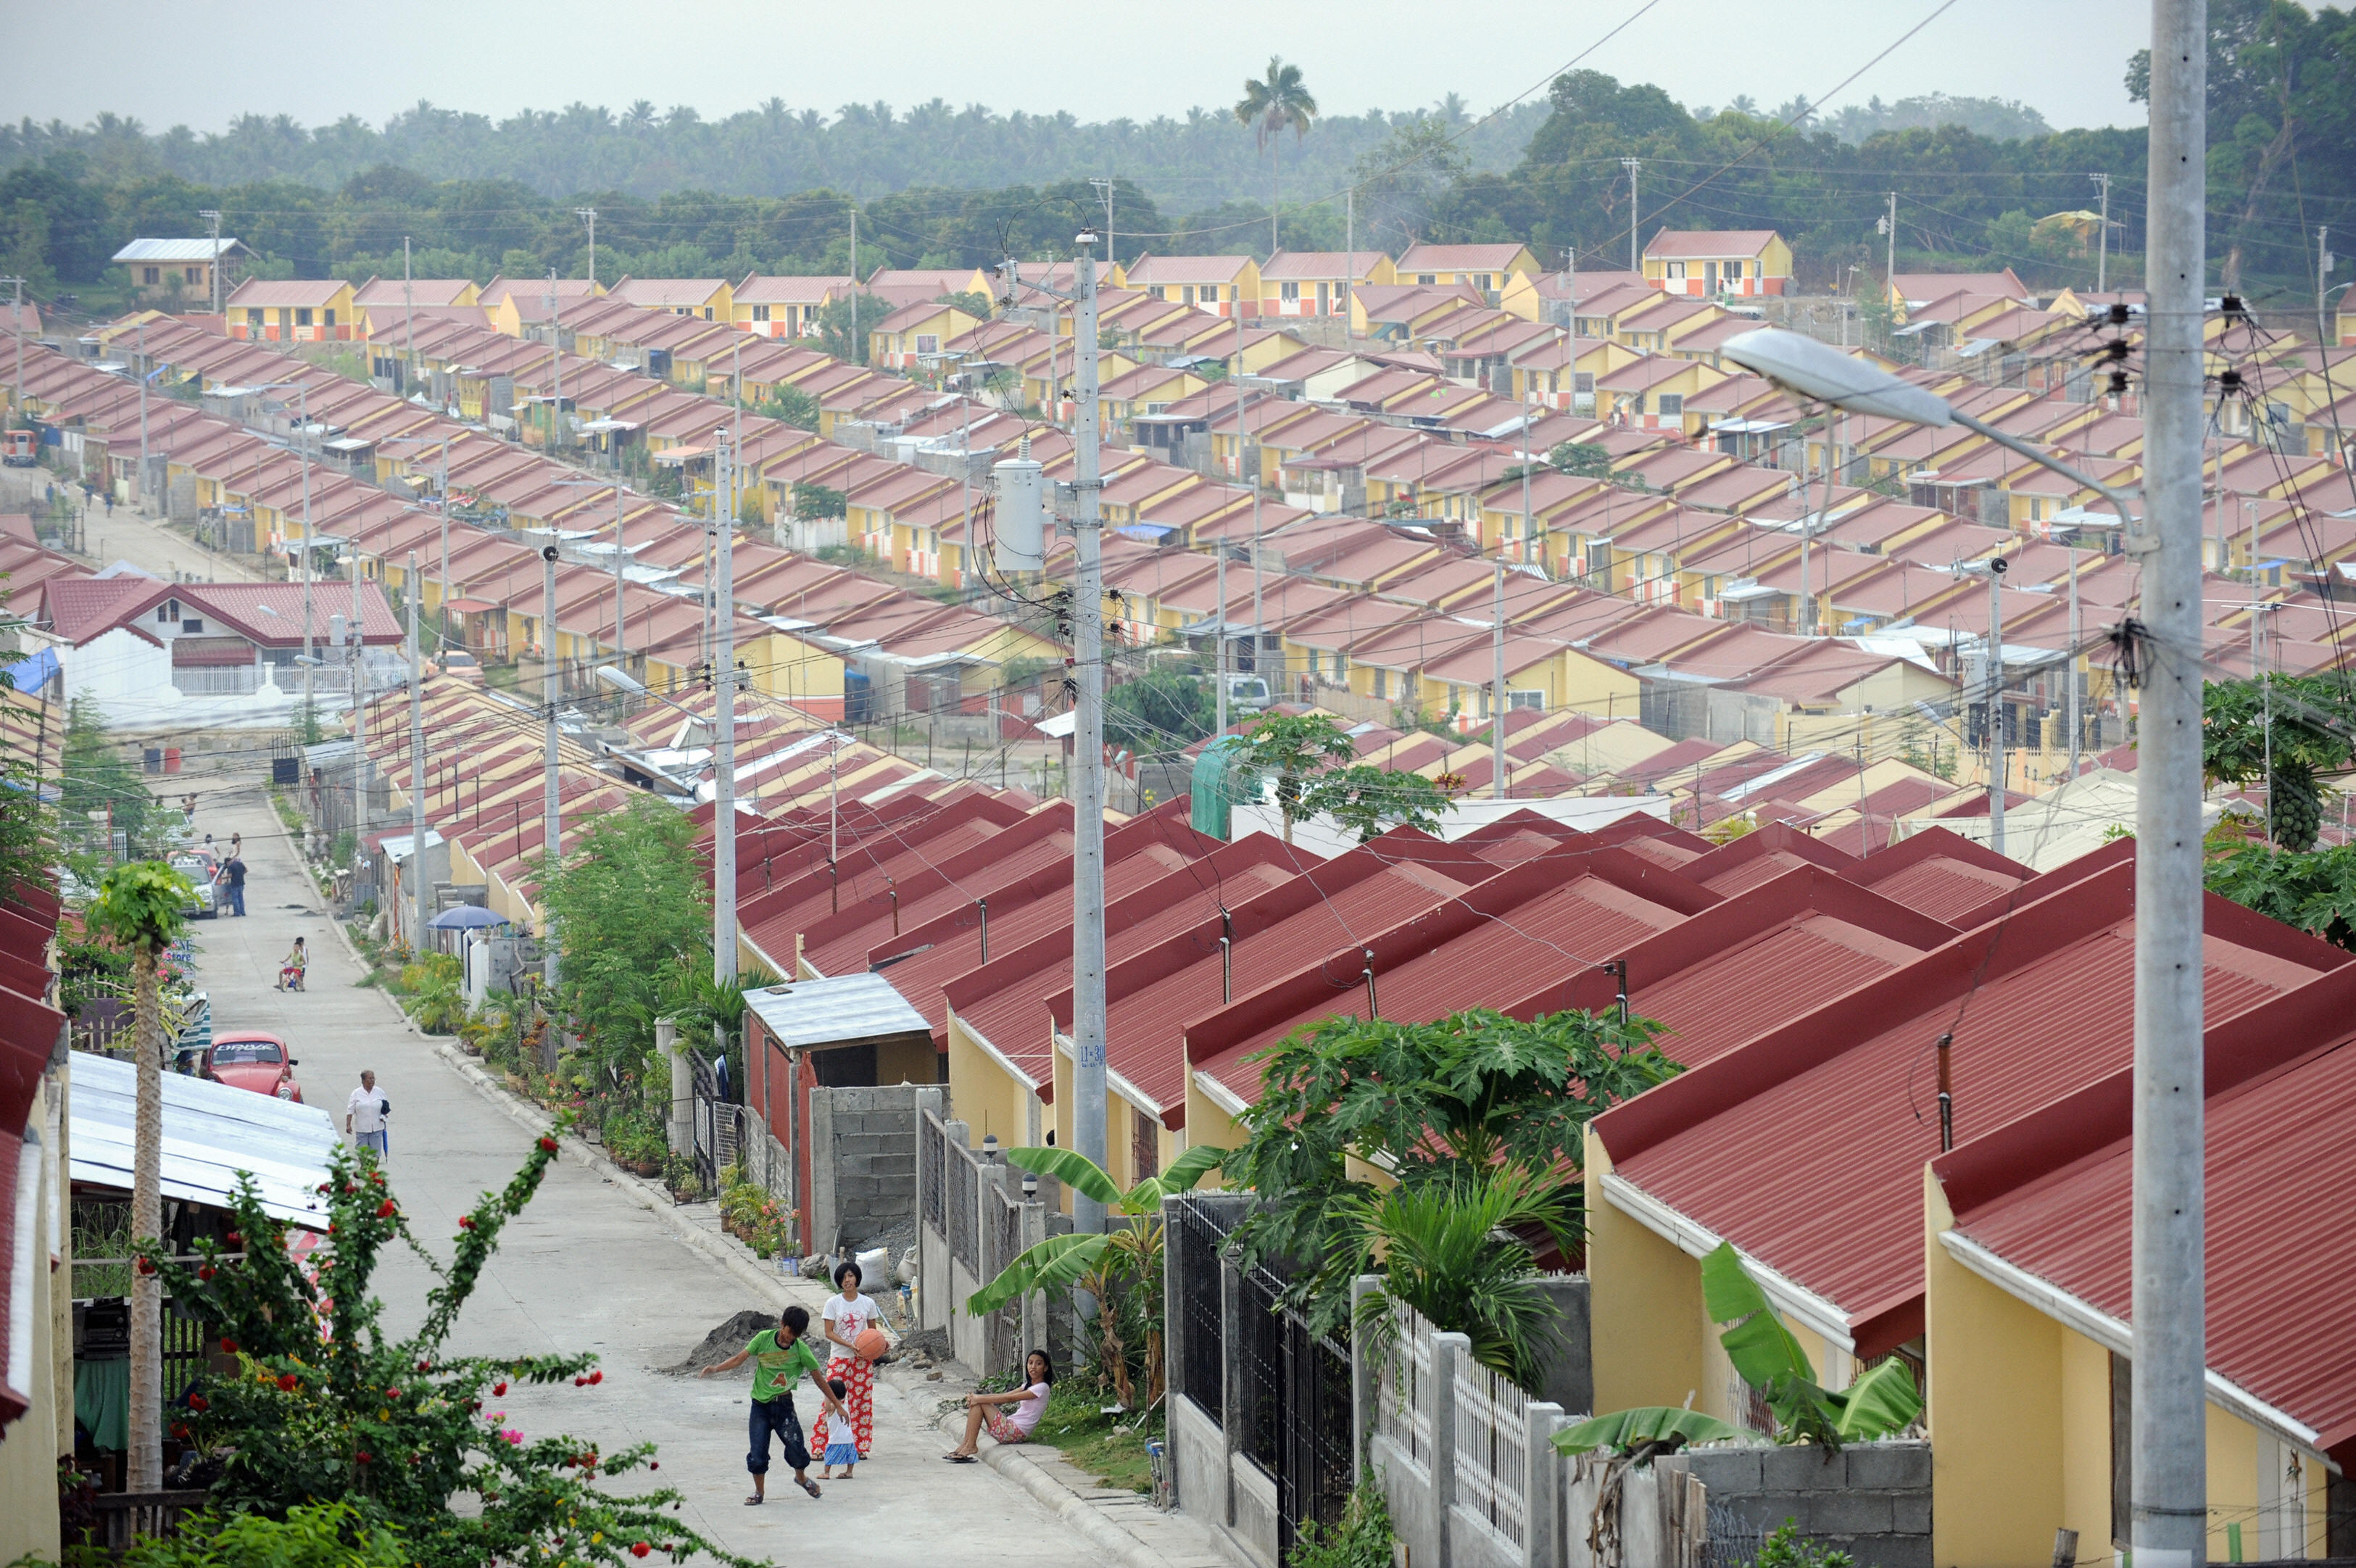 New housing agenda proposed philippine canadian inquirer for New house project